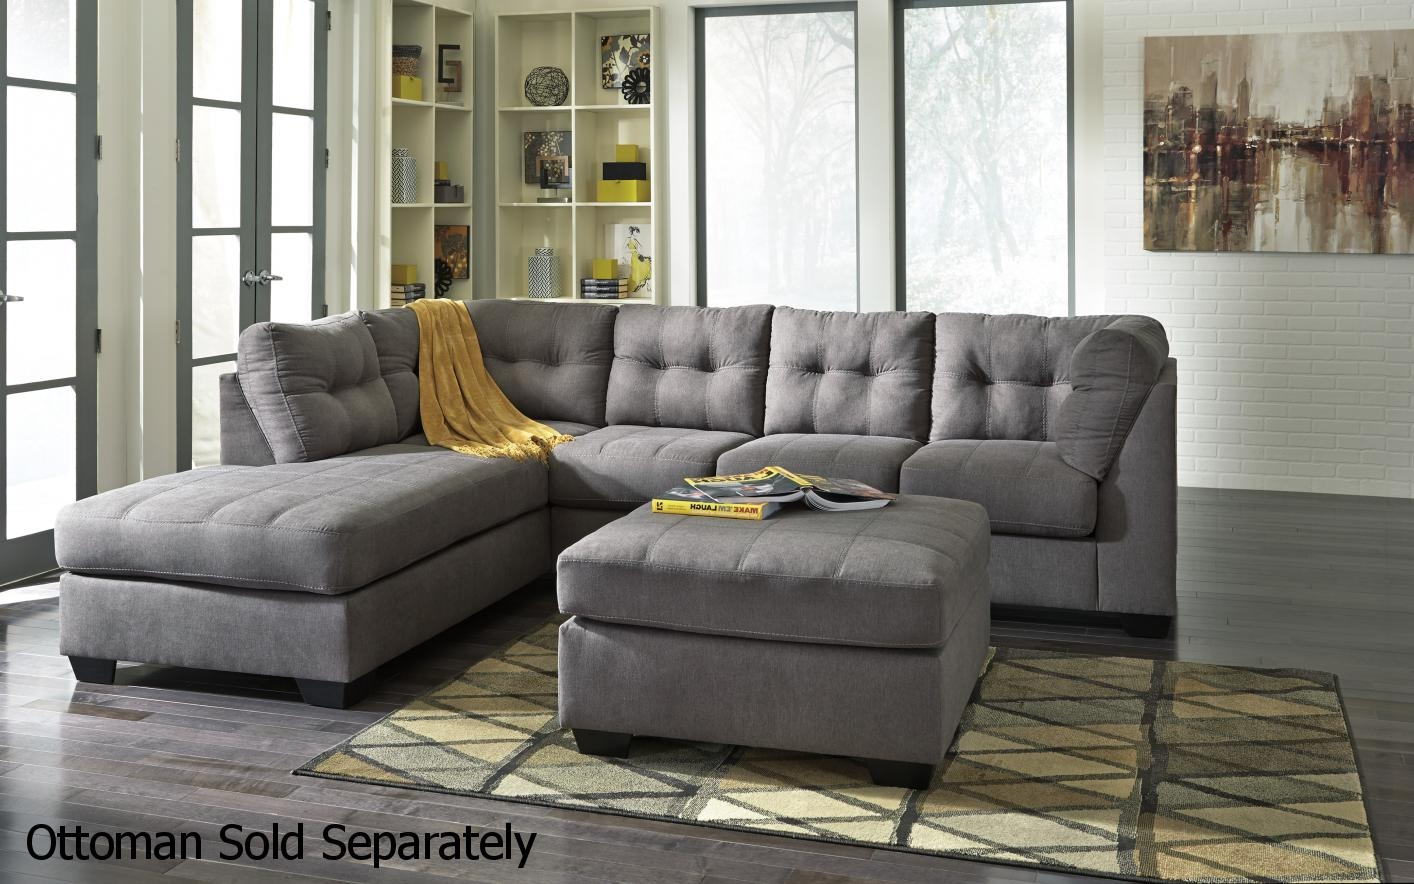 Ashley 4520016 4520067 Grey Fabric Sectional Sofa Steal A Sofa Inside Fabric Sectional Sofa (Image 1 of 15)